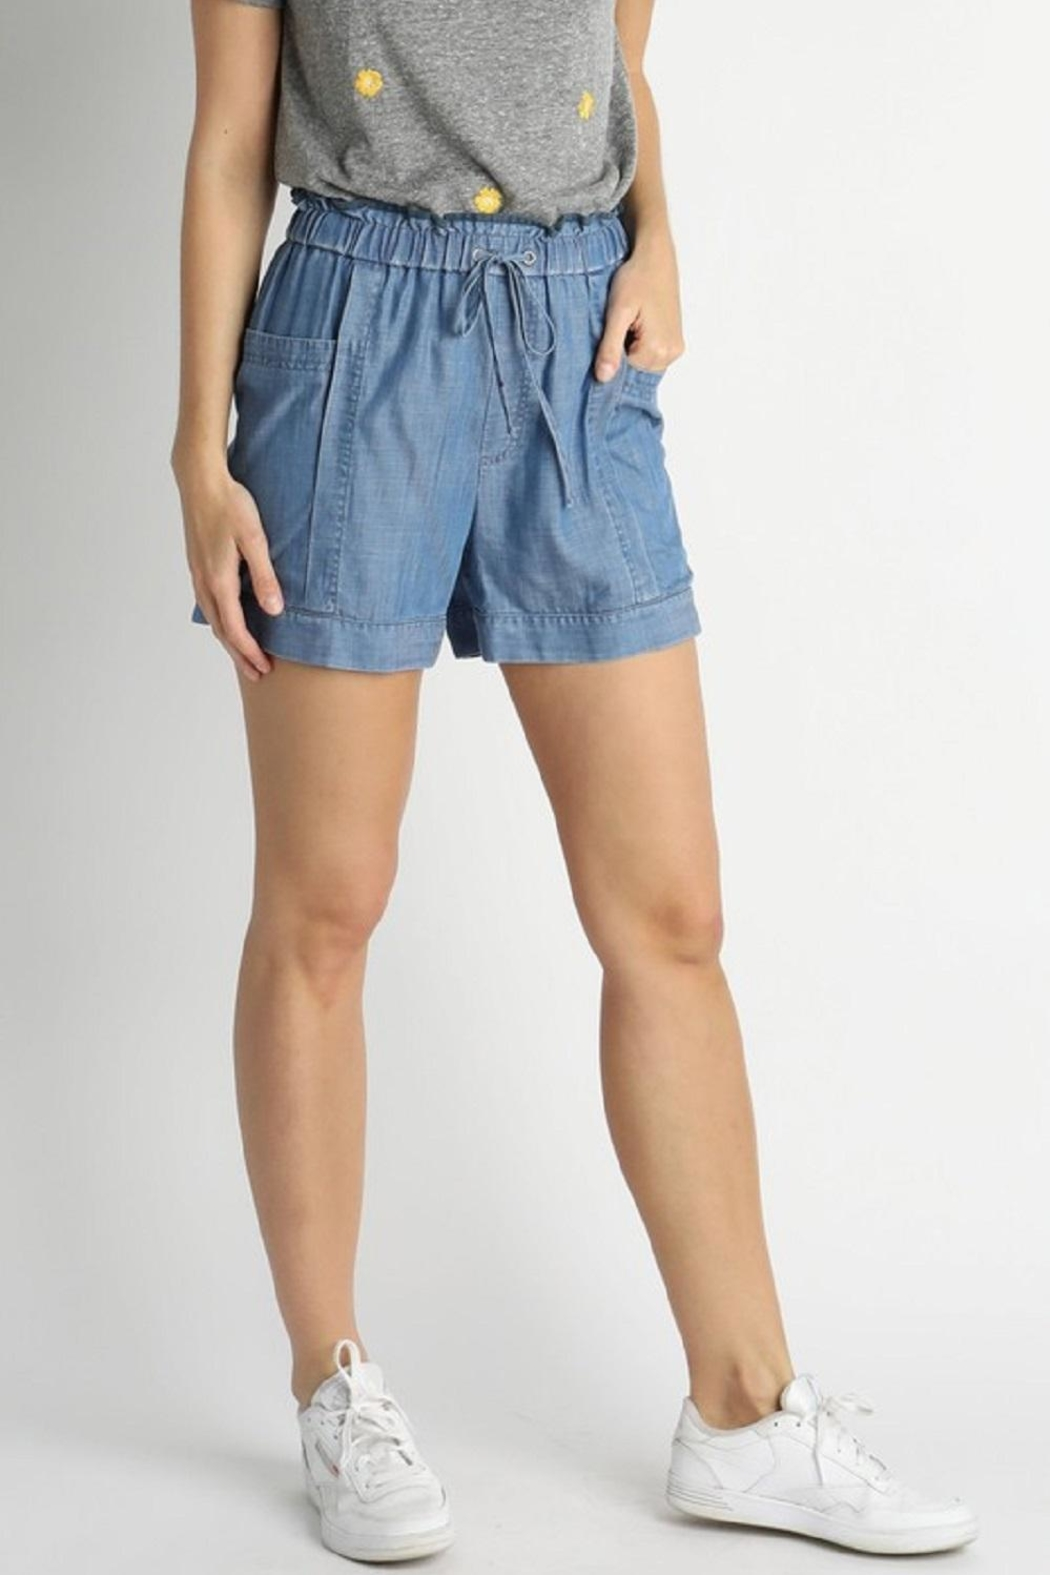 Current Air Elastic-Waist Tencil Shorts - Back Cropped Image